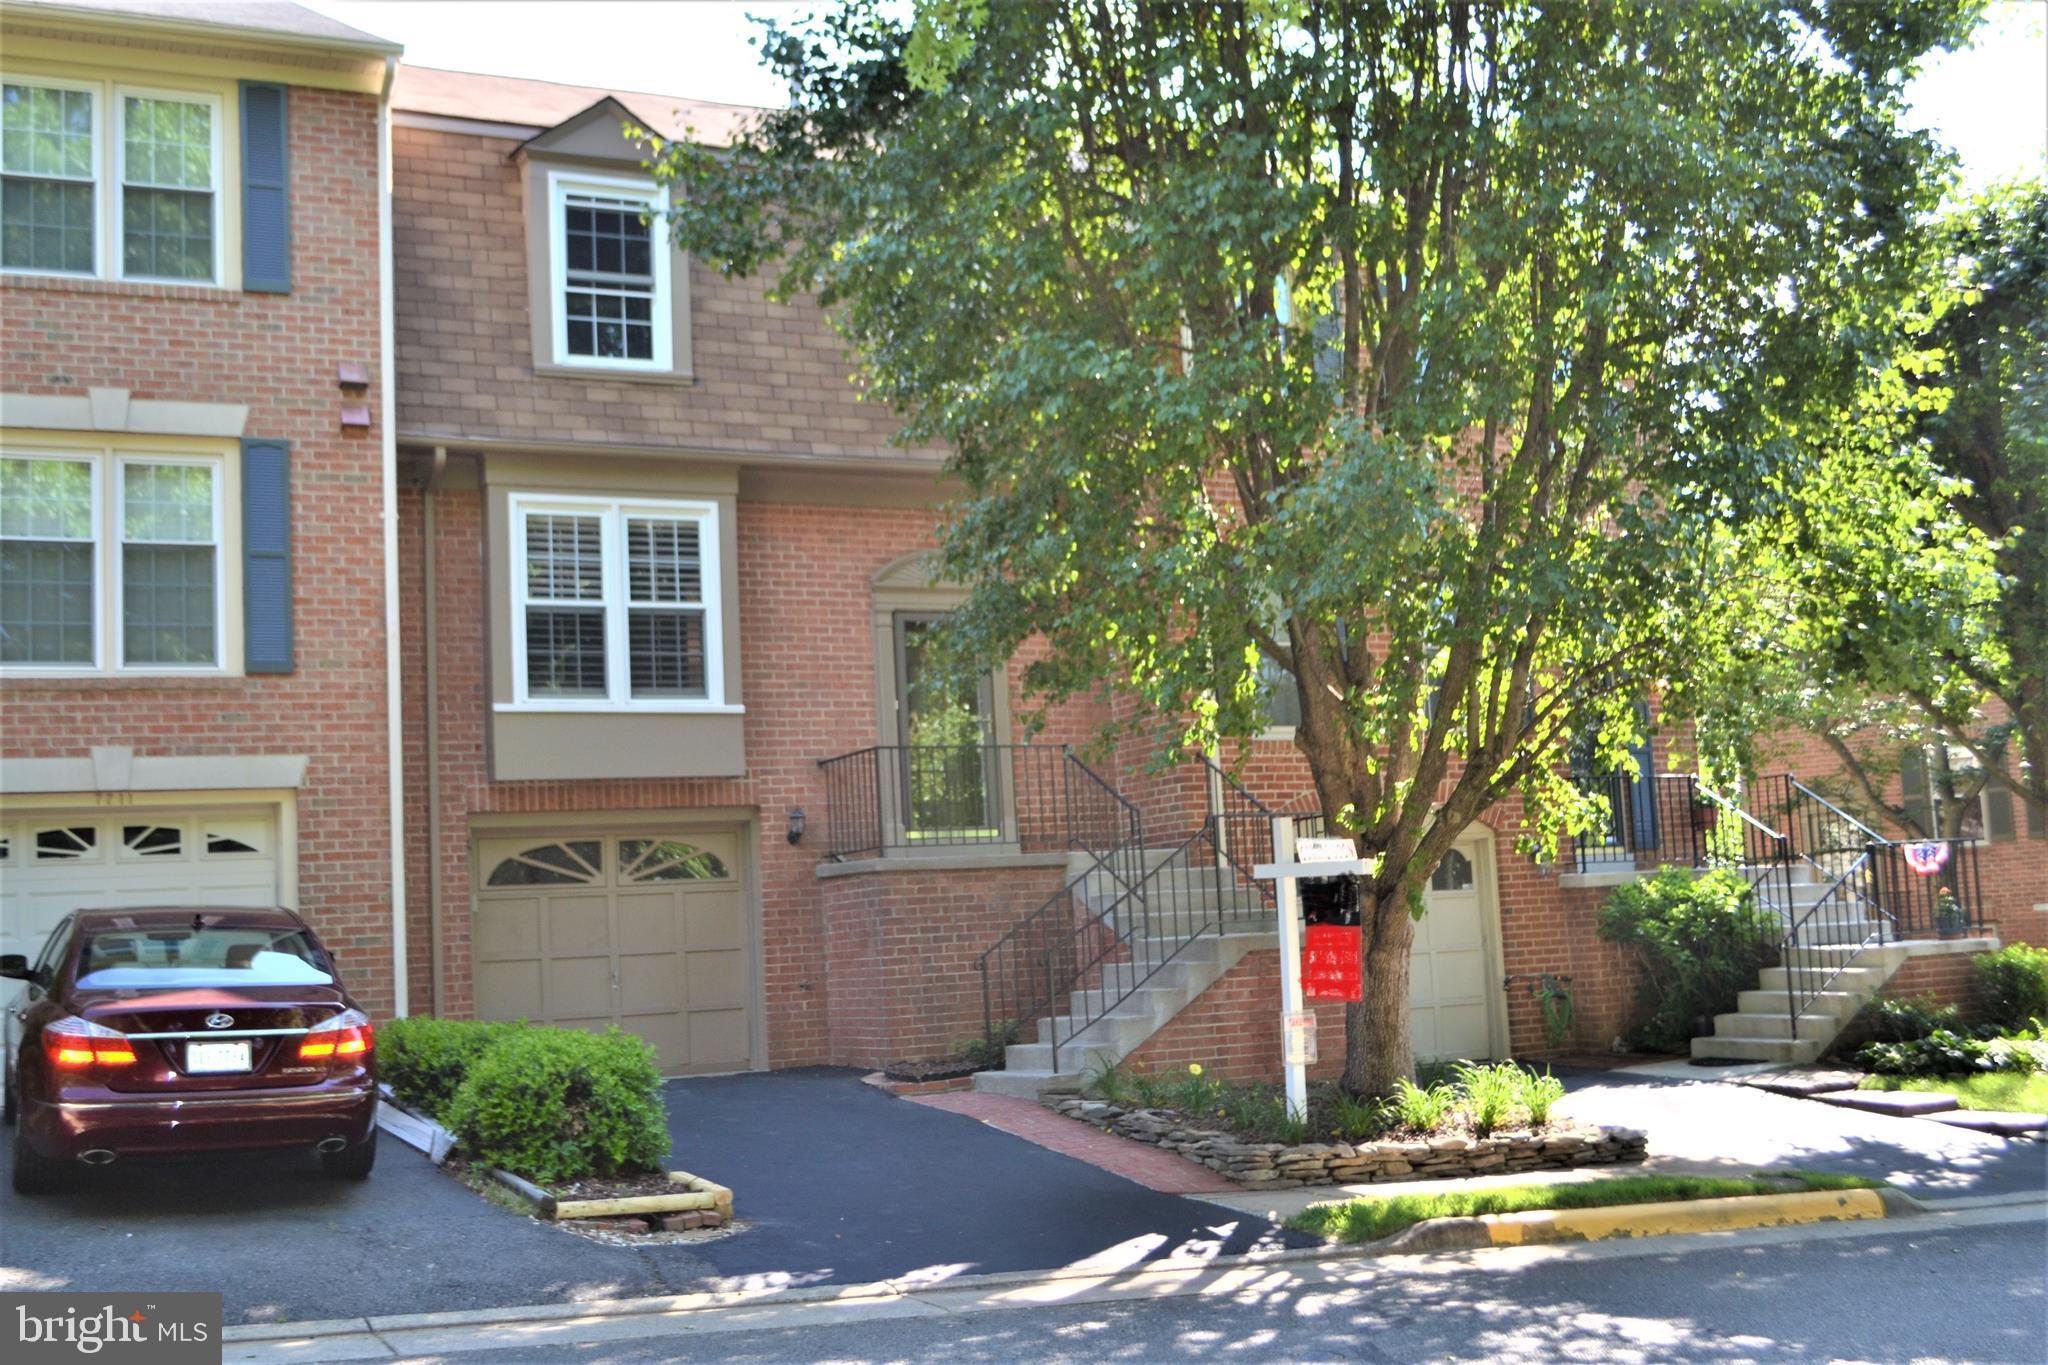 Welcome Home!  7713 Gromwell Court, Springfield.  This Beautiful 3 Bedroom, 4 Bath Colonial Townhouse in Springfield's Desirable neighborhood of Daventry!  Almost 2600 square feet of Living Space.  This home has a renovated kitchen with Granite Counter Tops, Quality Appliances, New Plush Carpet, Freshly Painted, Renovated Bathrooms, Updated Windows, Walk-Out Basement with a wood-burning fireplace.   The Master Bedroom Suite has a Vaulted Ceiling and Walk-In Closet.  The Master Bathroom includes a large soaking tub, and walk in shower.  This Home is a MUST SEE!!!  HOA Fees include a Community Pool, Trash Pick-Up 2x a week, Tennis Courts, Tot-Lots, Lawn Care and Snow Removal. Easy access to Metro, Bus and Slug Line.  Desirable Schools of West Springfield Elementary  / Irving Middle  / West Springfield High School!